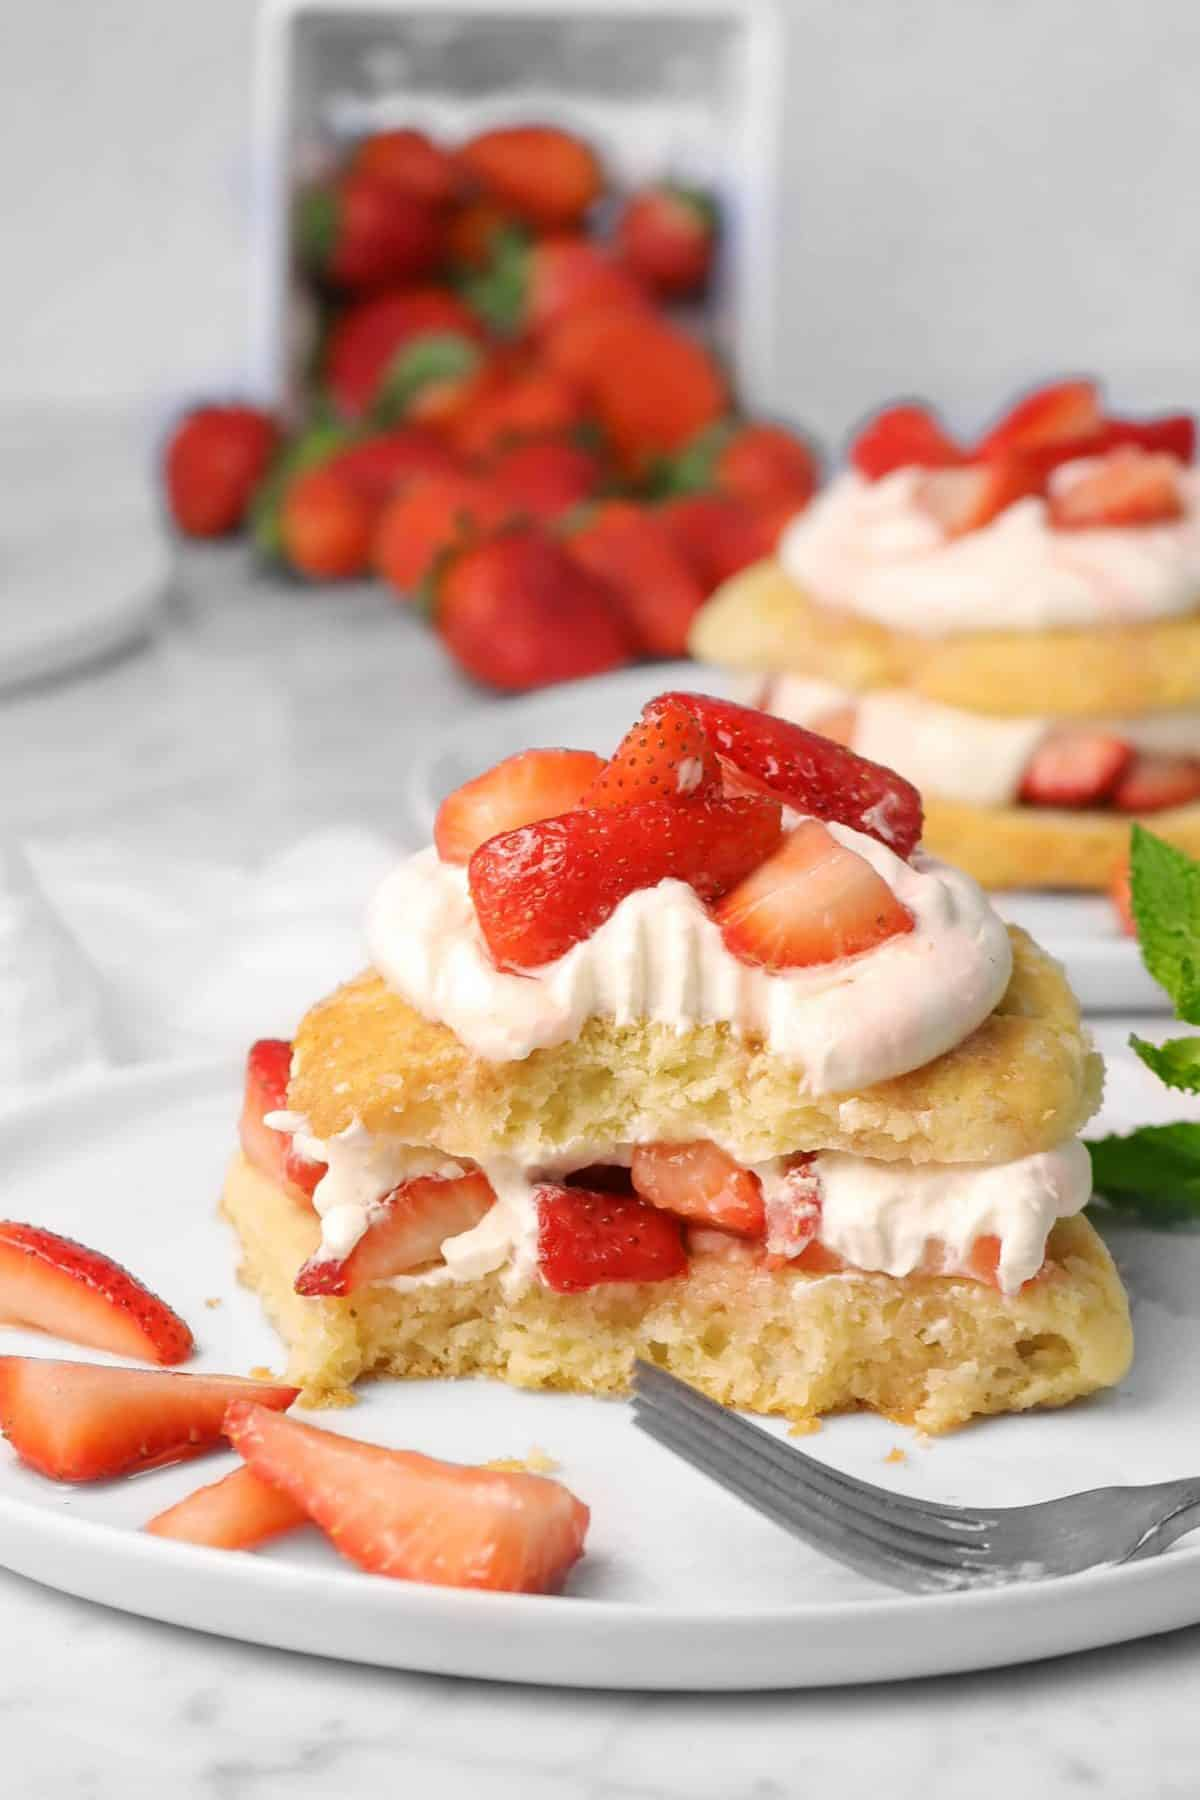 strawberry shortcake with a bite taken out of it and strawberries in the background